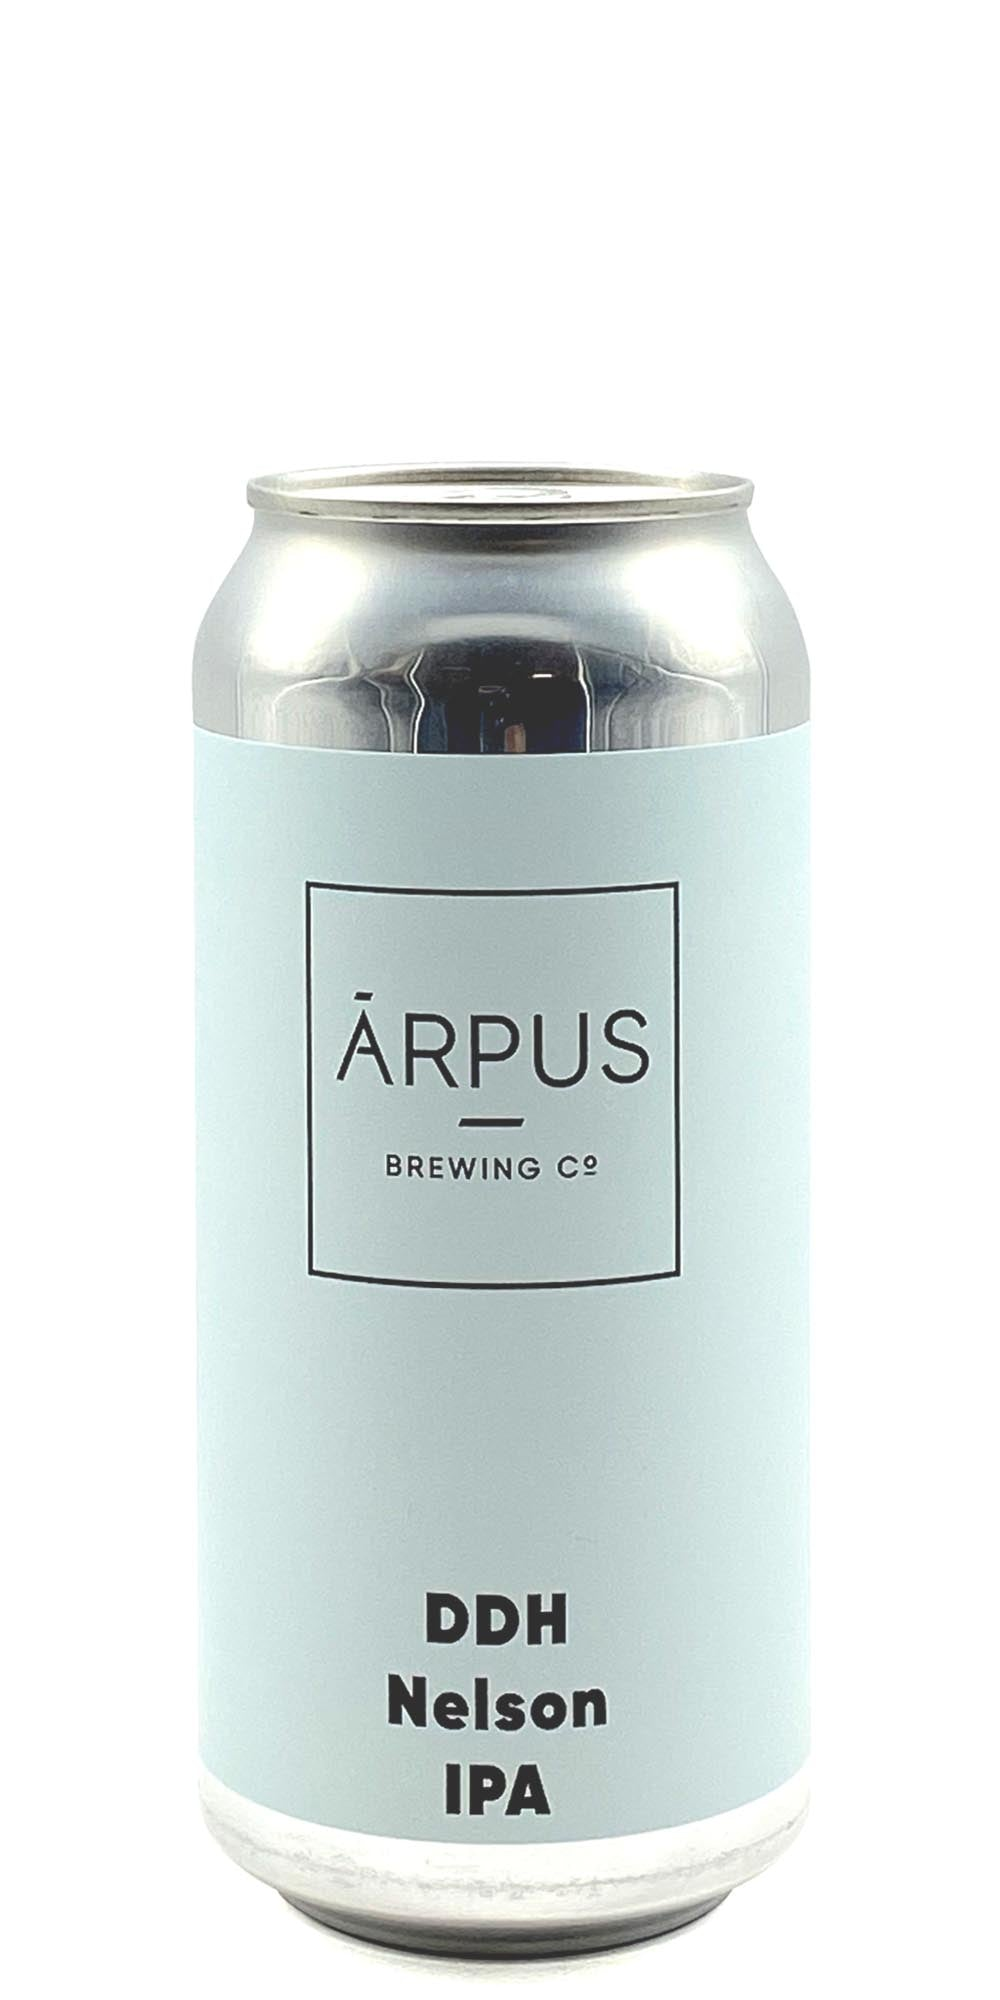 Arpus Brewing Co - DDH Nelson IPA - Drikbeer - Order Craft Beer Online